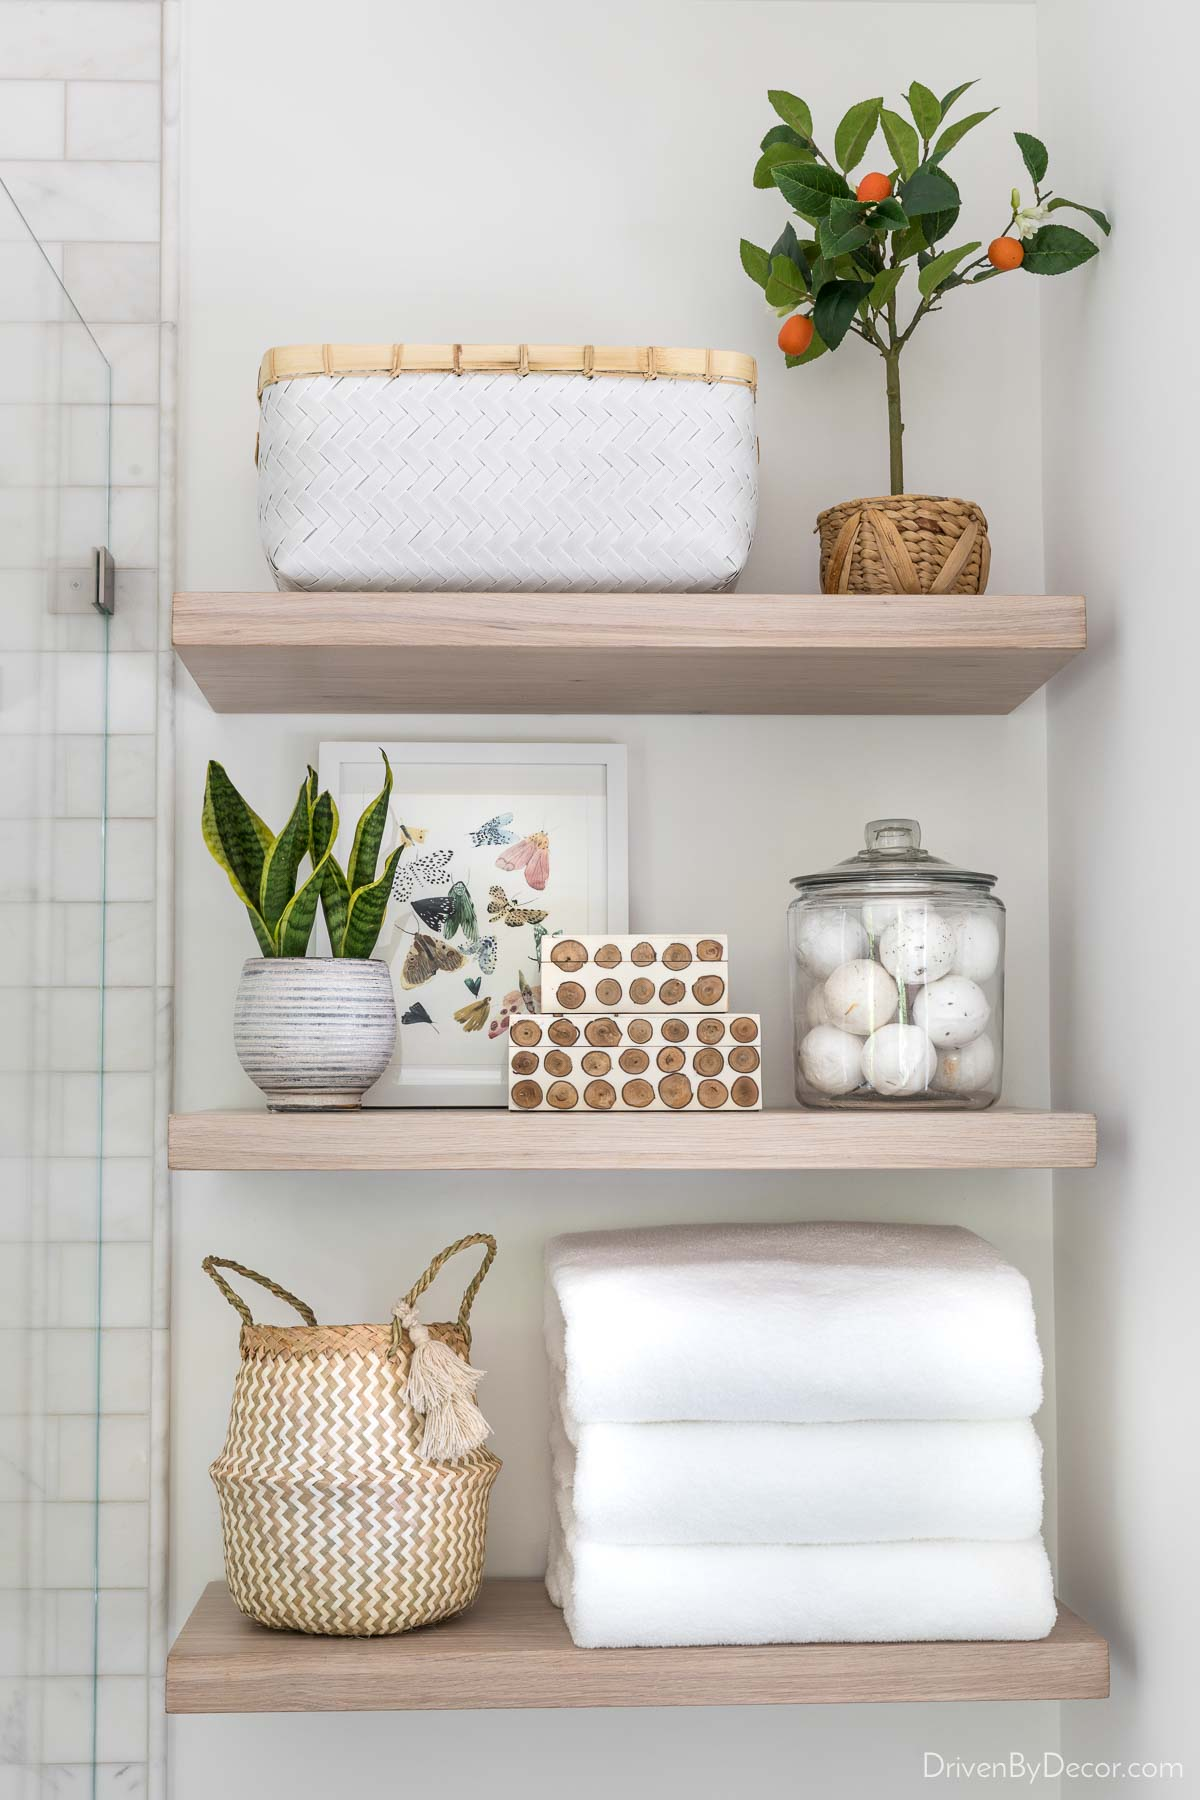 A favorite home remodeling idea is adding floating shelves for stylish storage!